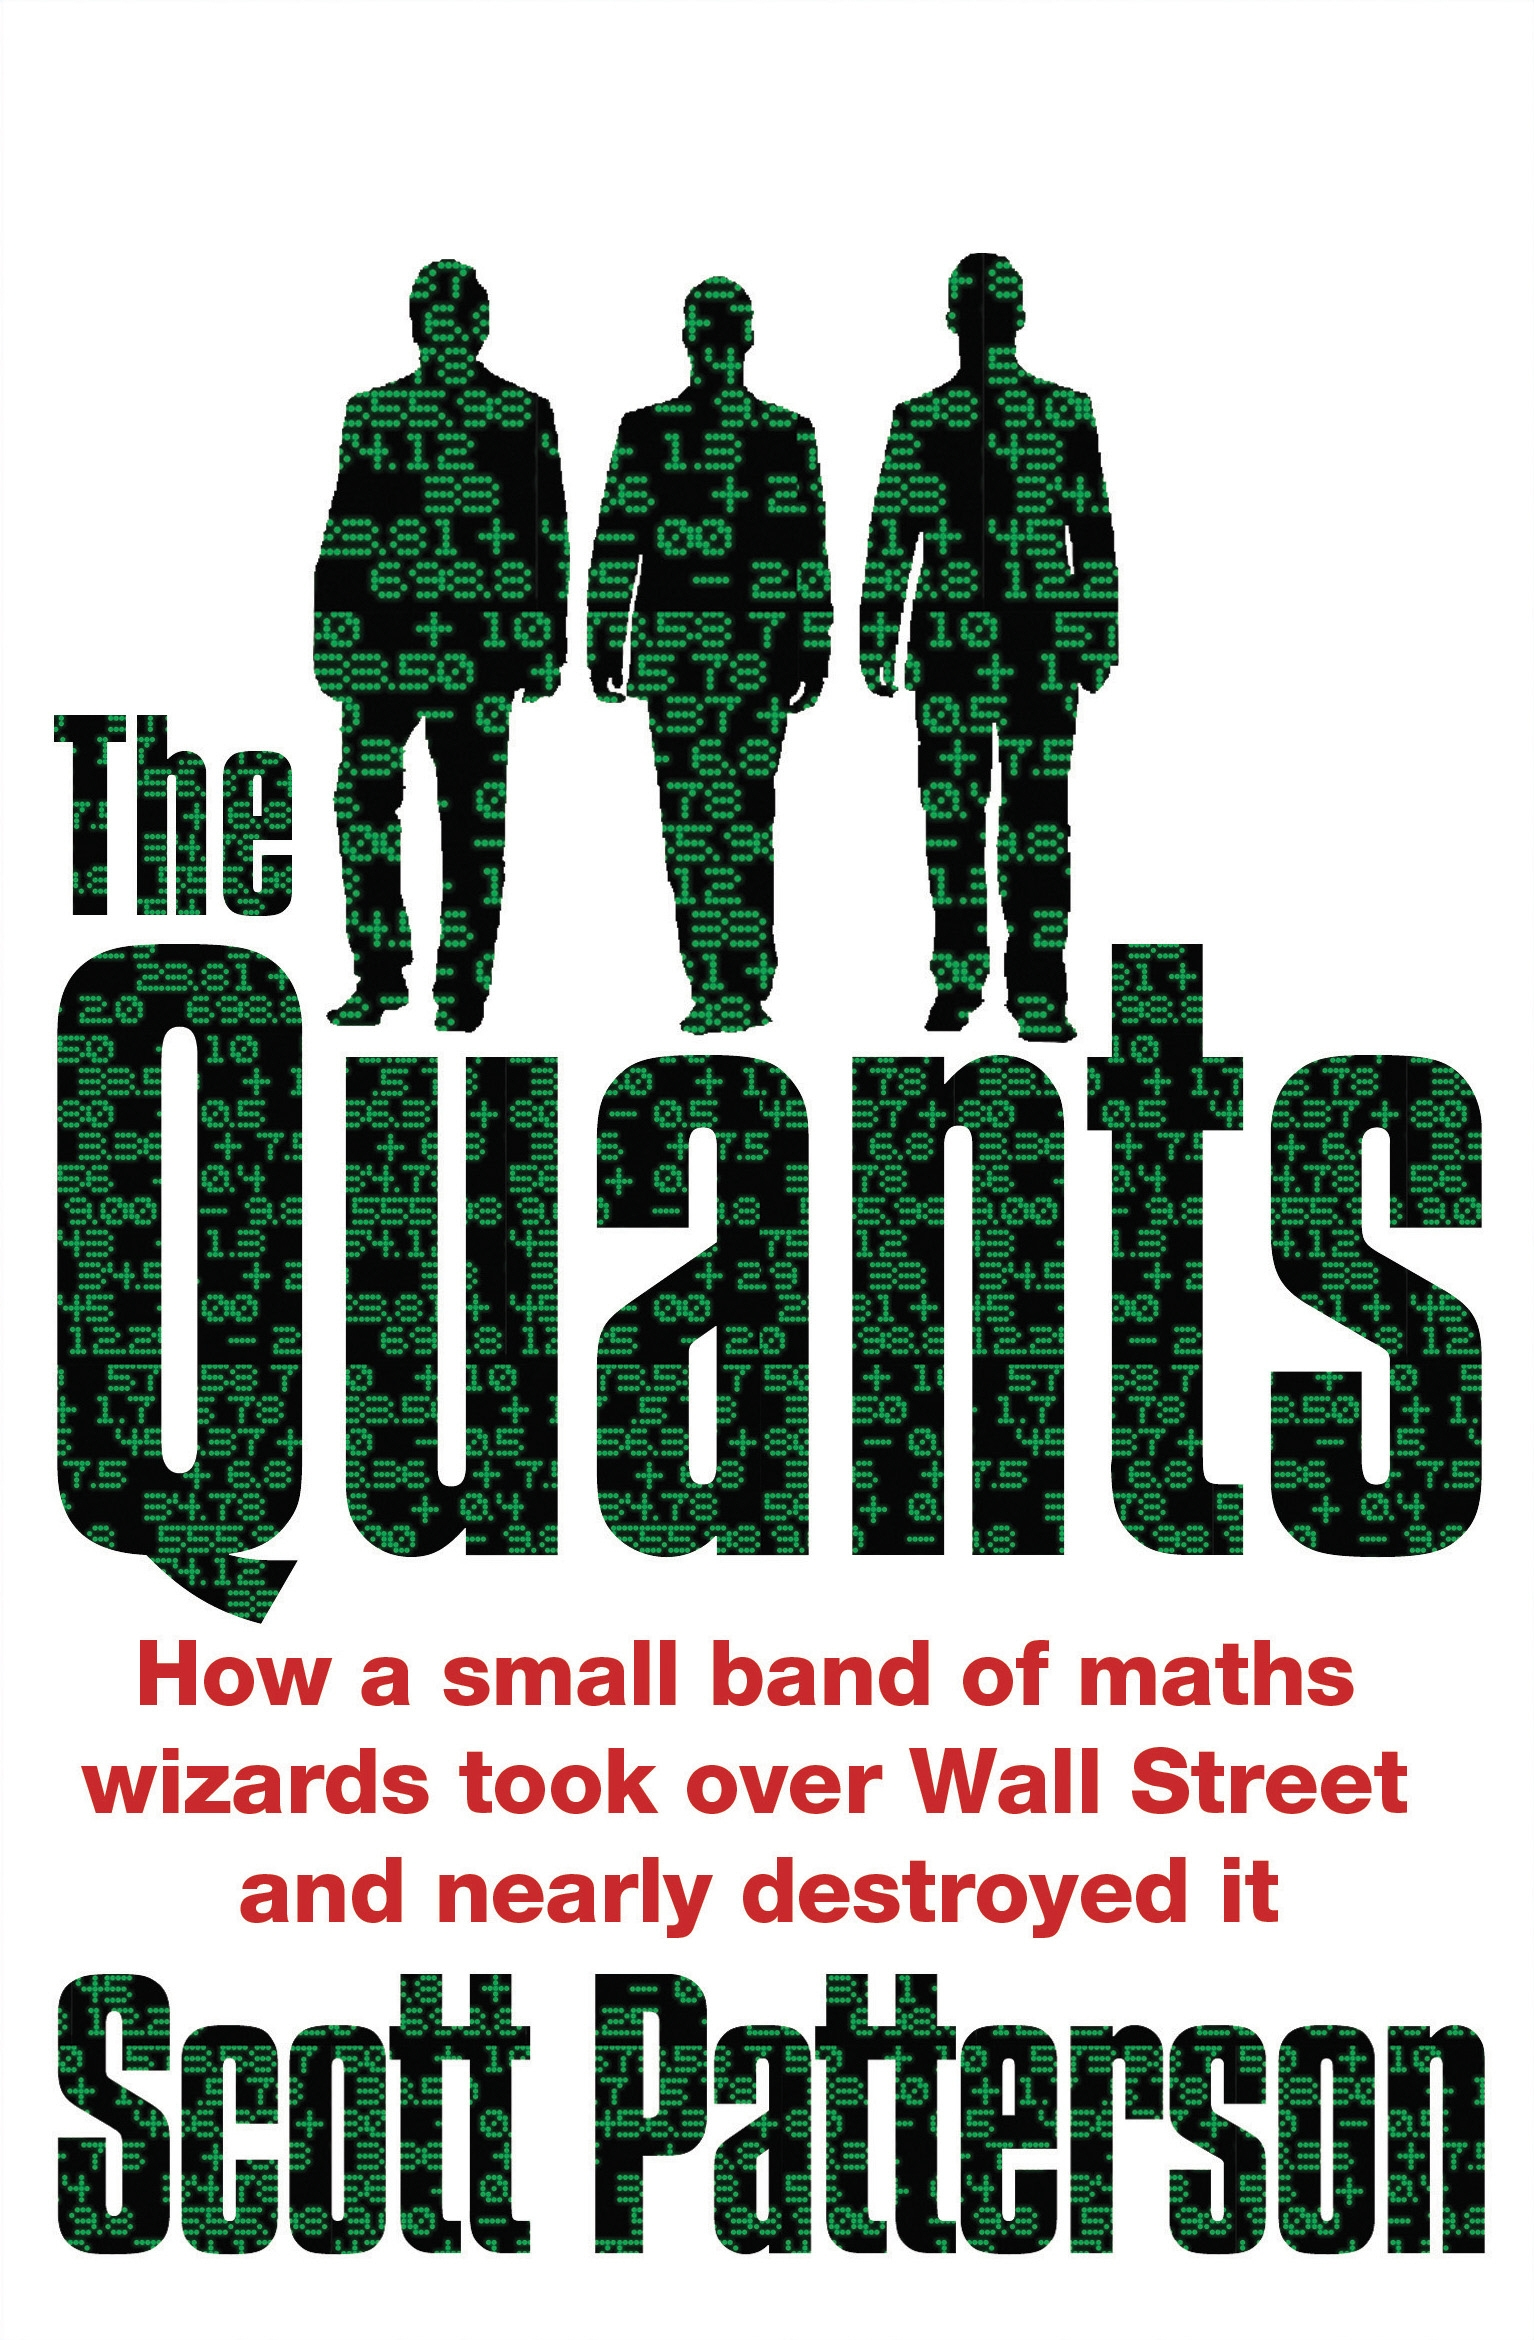 The Quants: The maths geniuses who brought down Wall Street by Scott Patterson, ISBN: 9781847940599